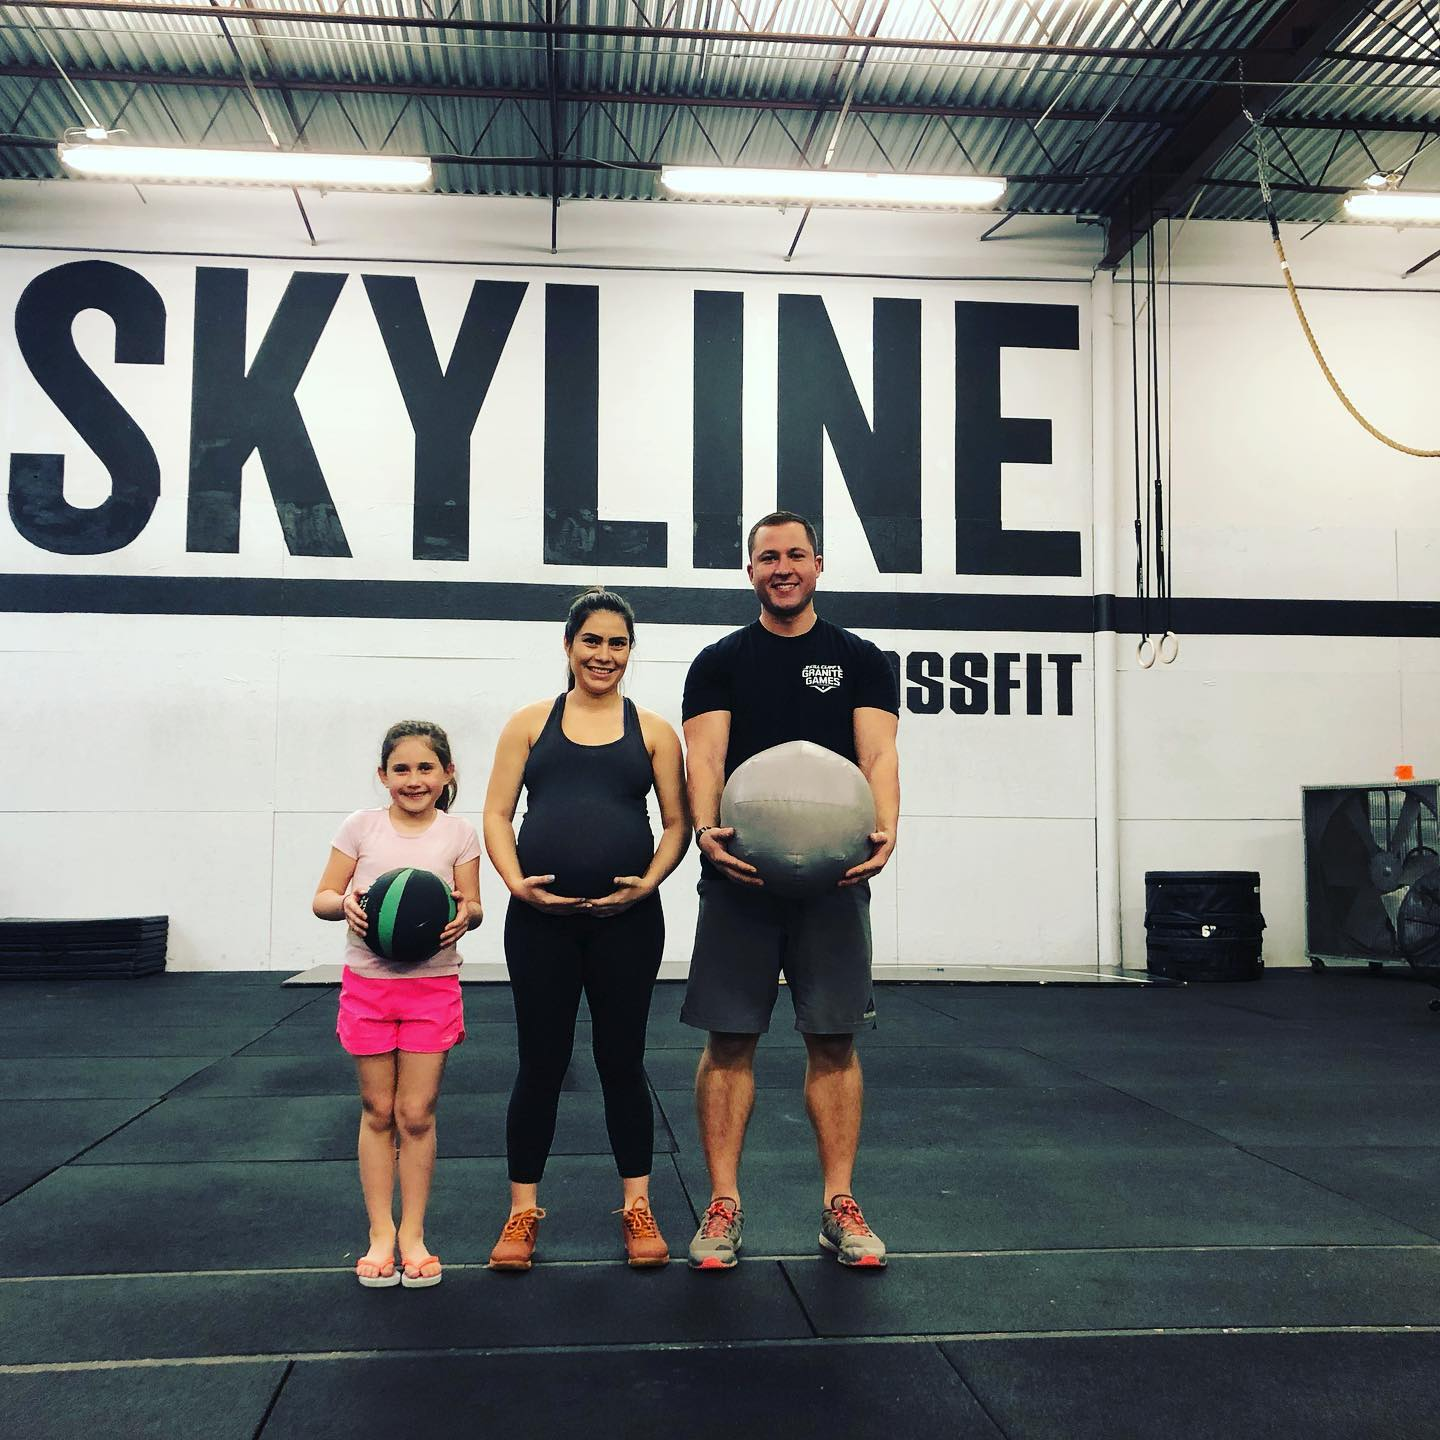 The quality of our relationships have a profound impact on our health.  Changing your behavior can change your thoughts.  This is the idea of cognitive therapy.   #crossfit   #skylinecrossfit   #crossfitkids